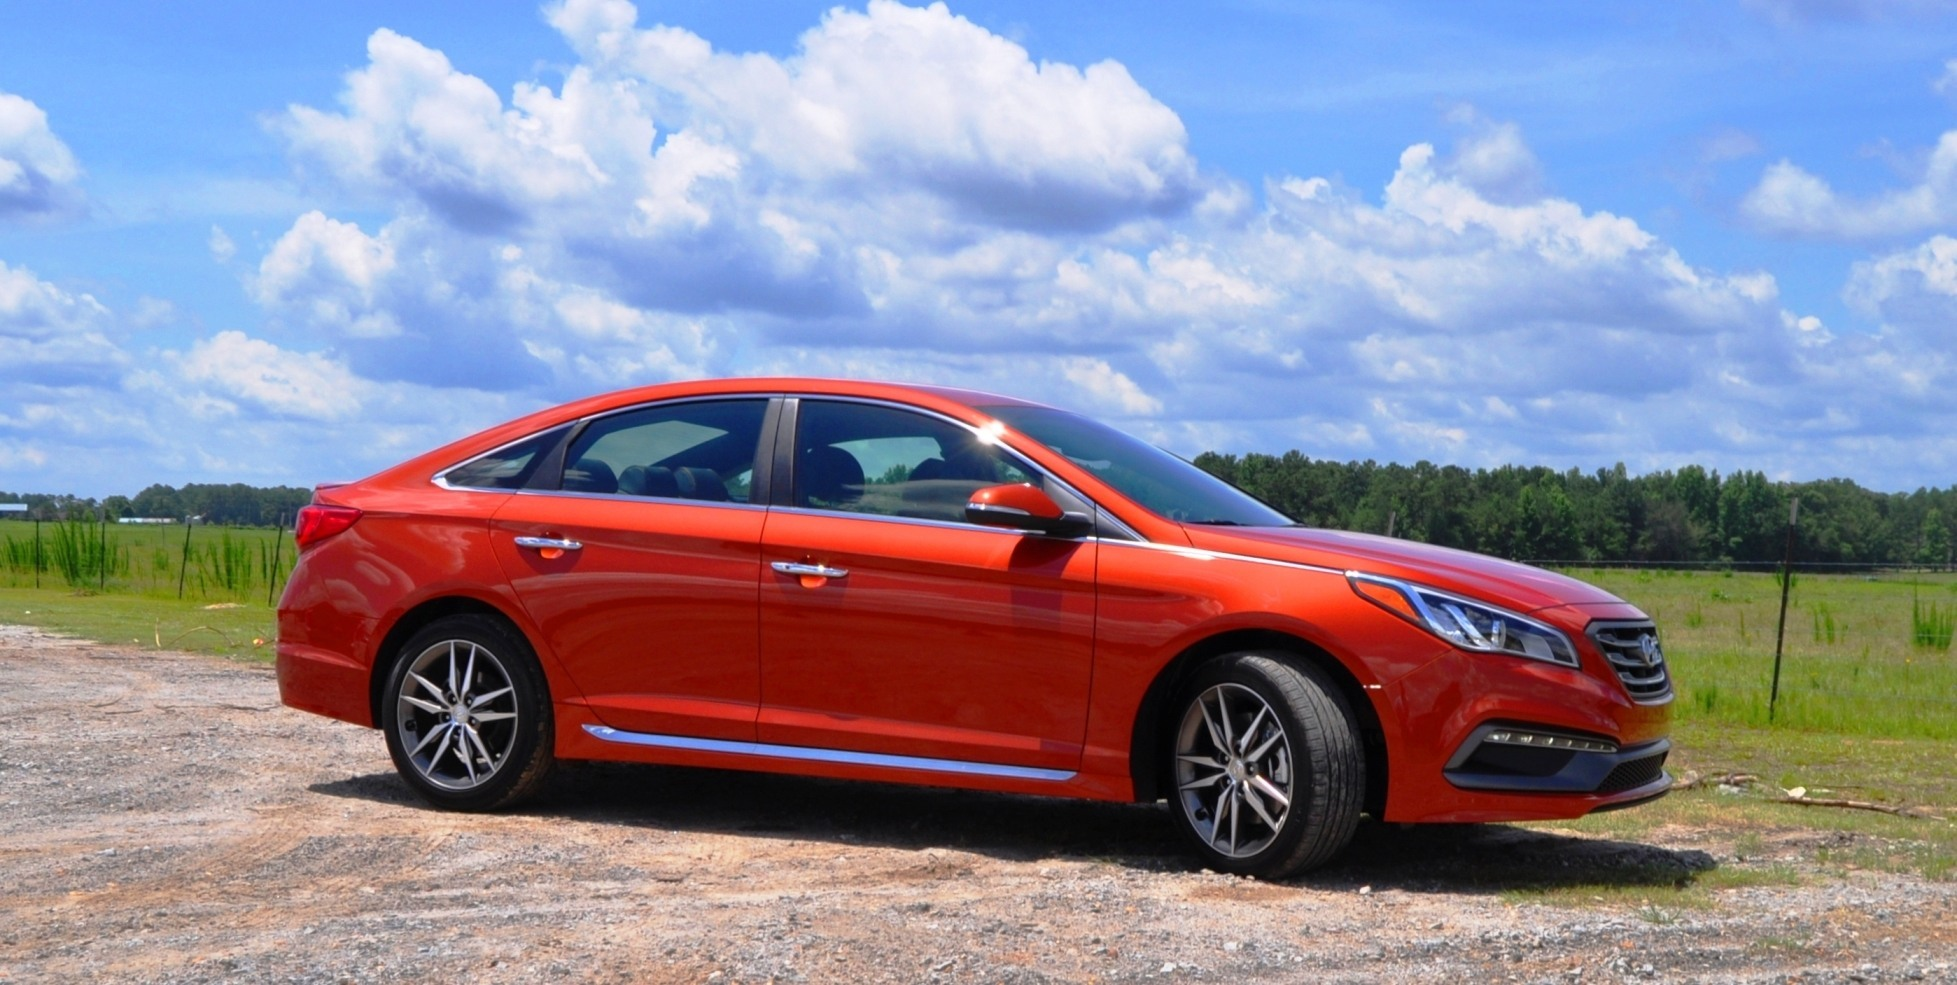 2015 hyundai sonata sport 2 0t 160 photos from national media launch 127. Black Bedroom Furniture Sets. Home Design Ideas